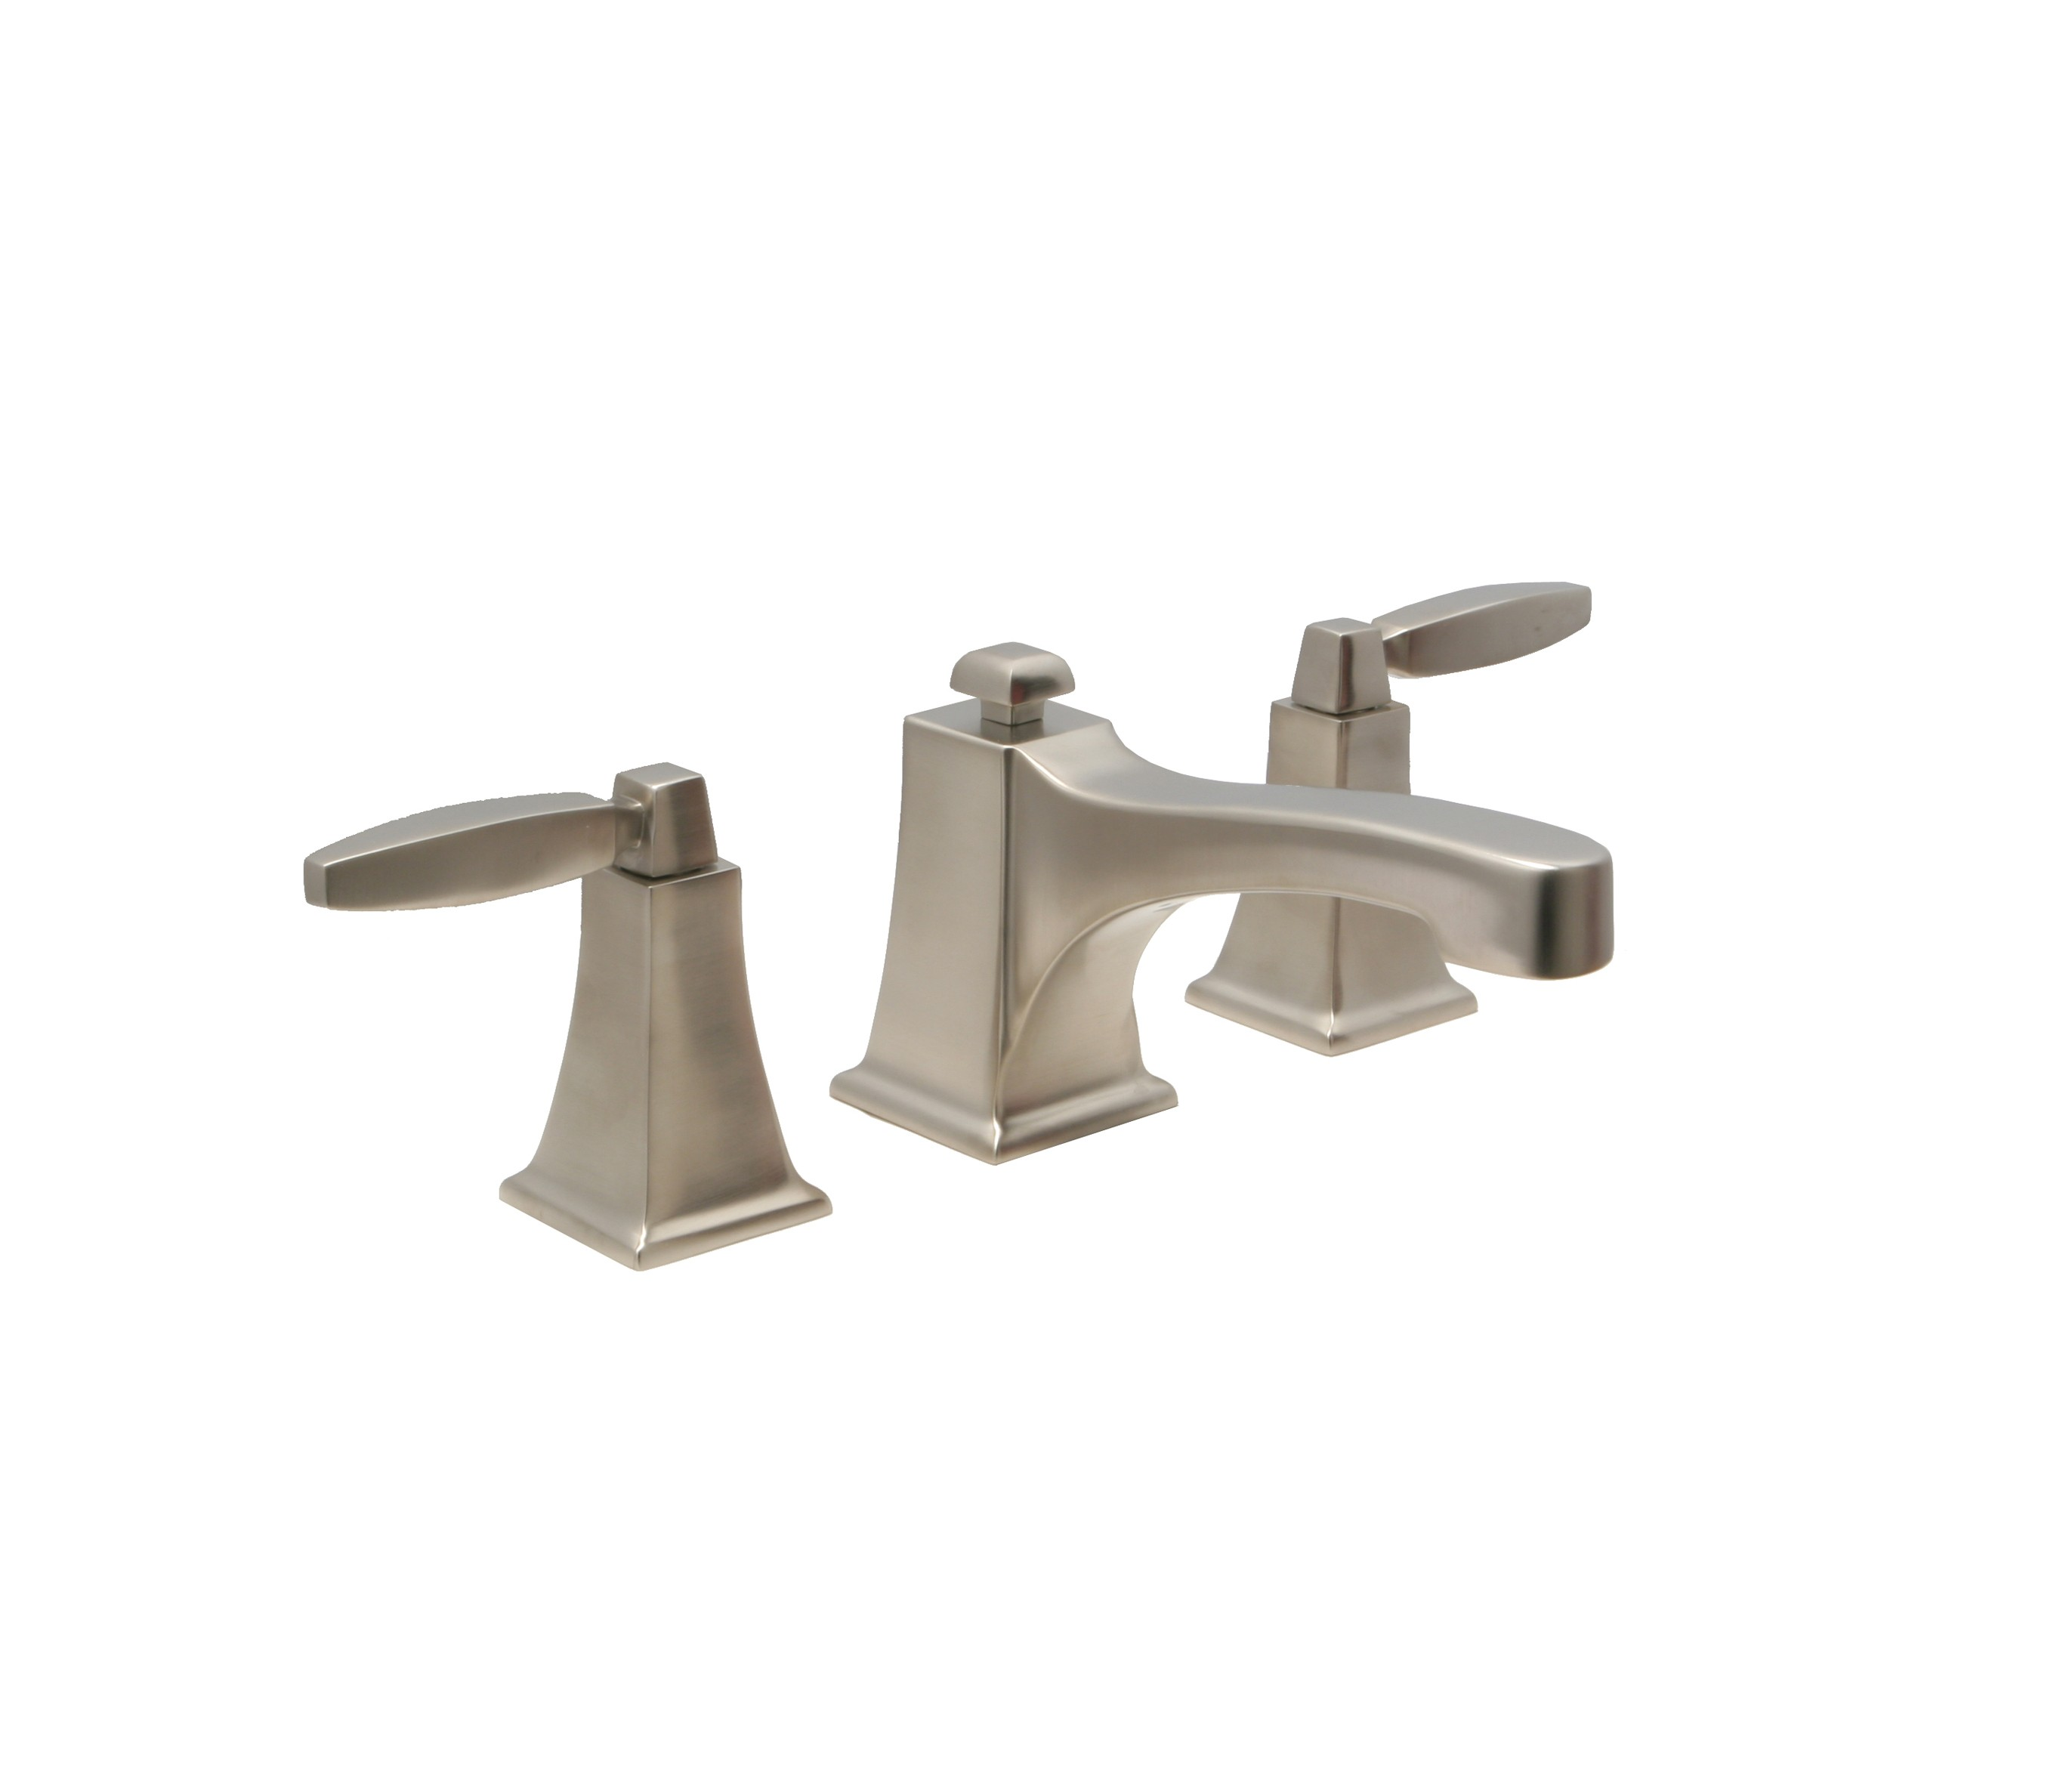 Intrigue Widespread Faucet W4560002-1